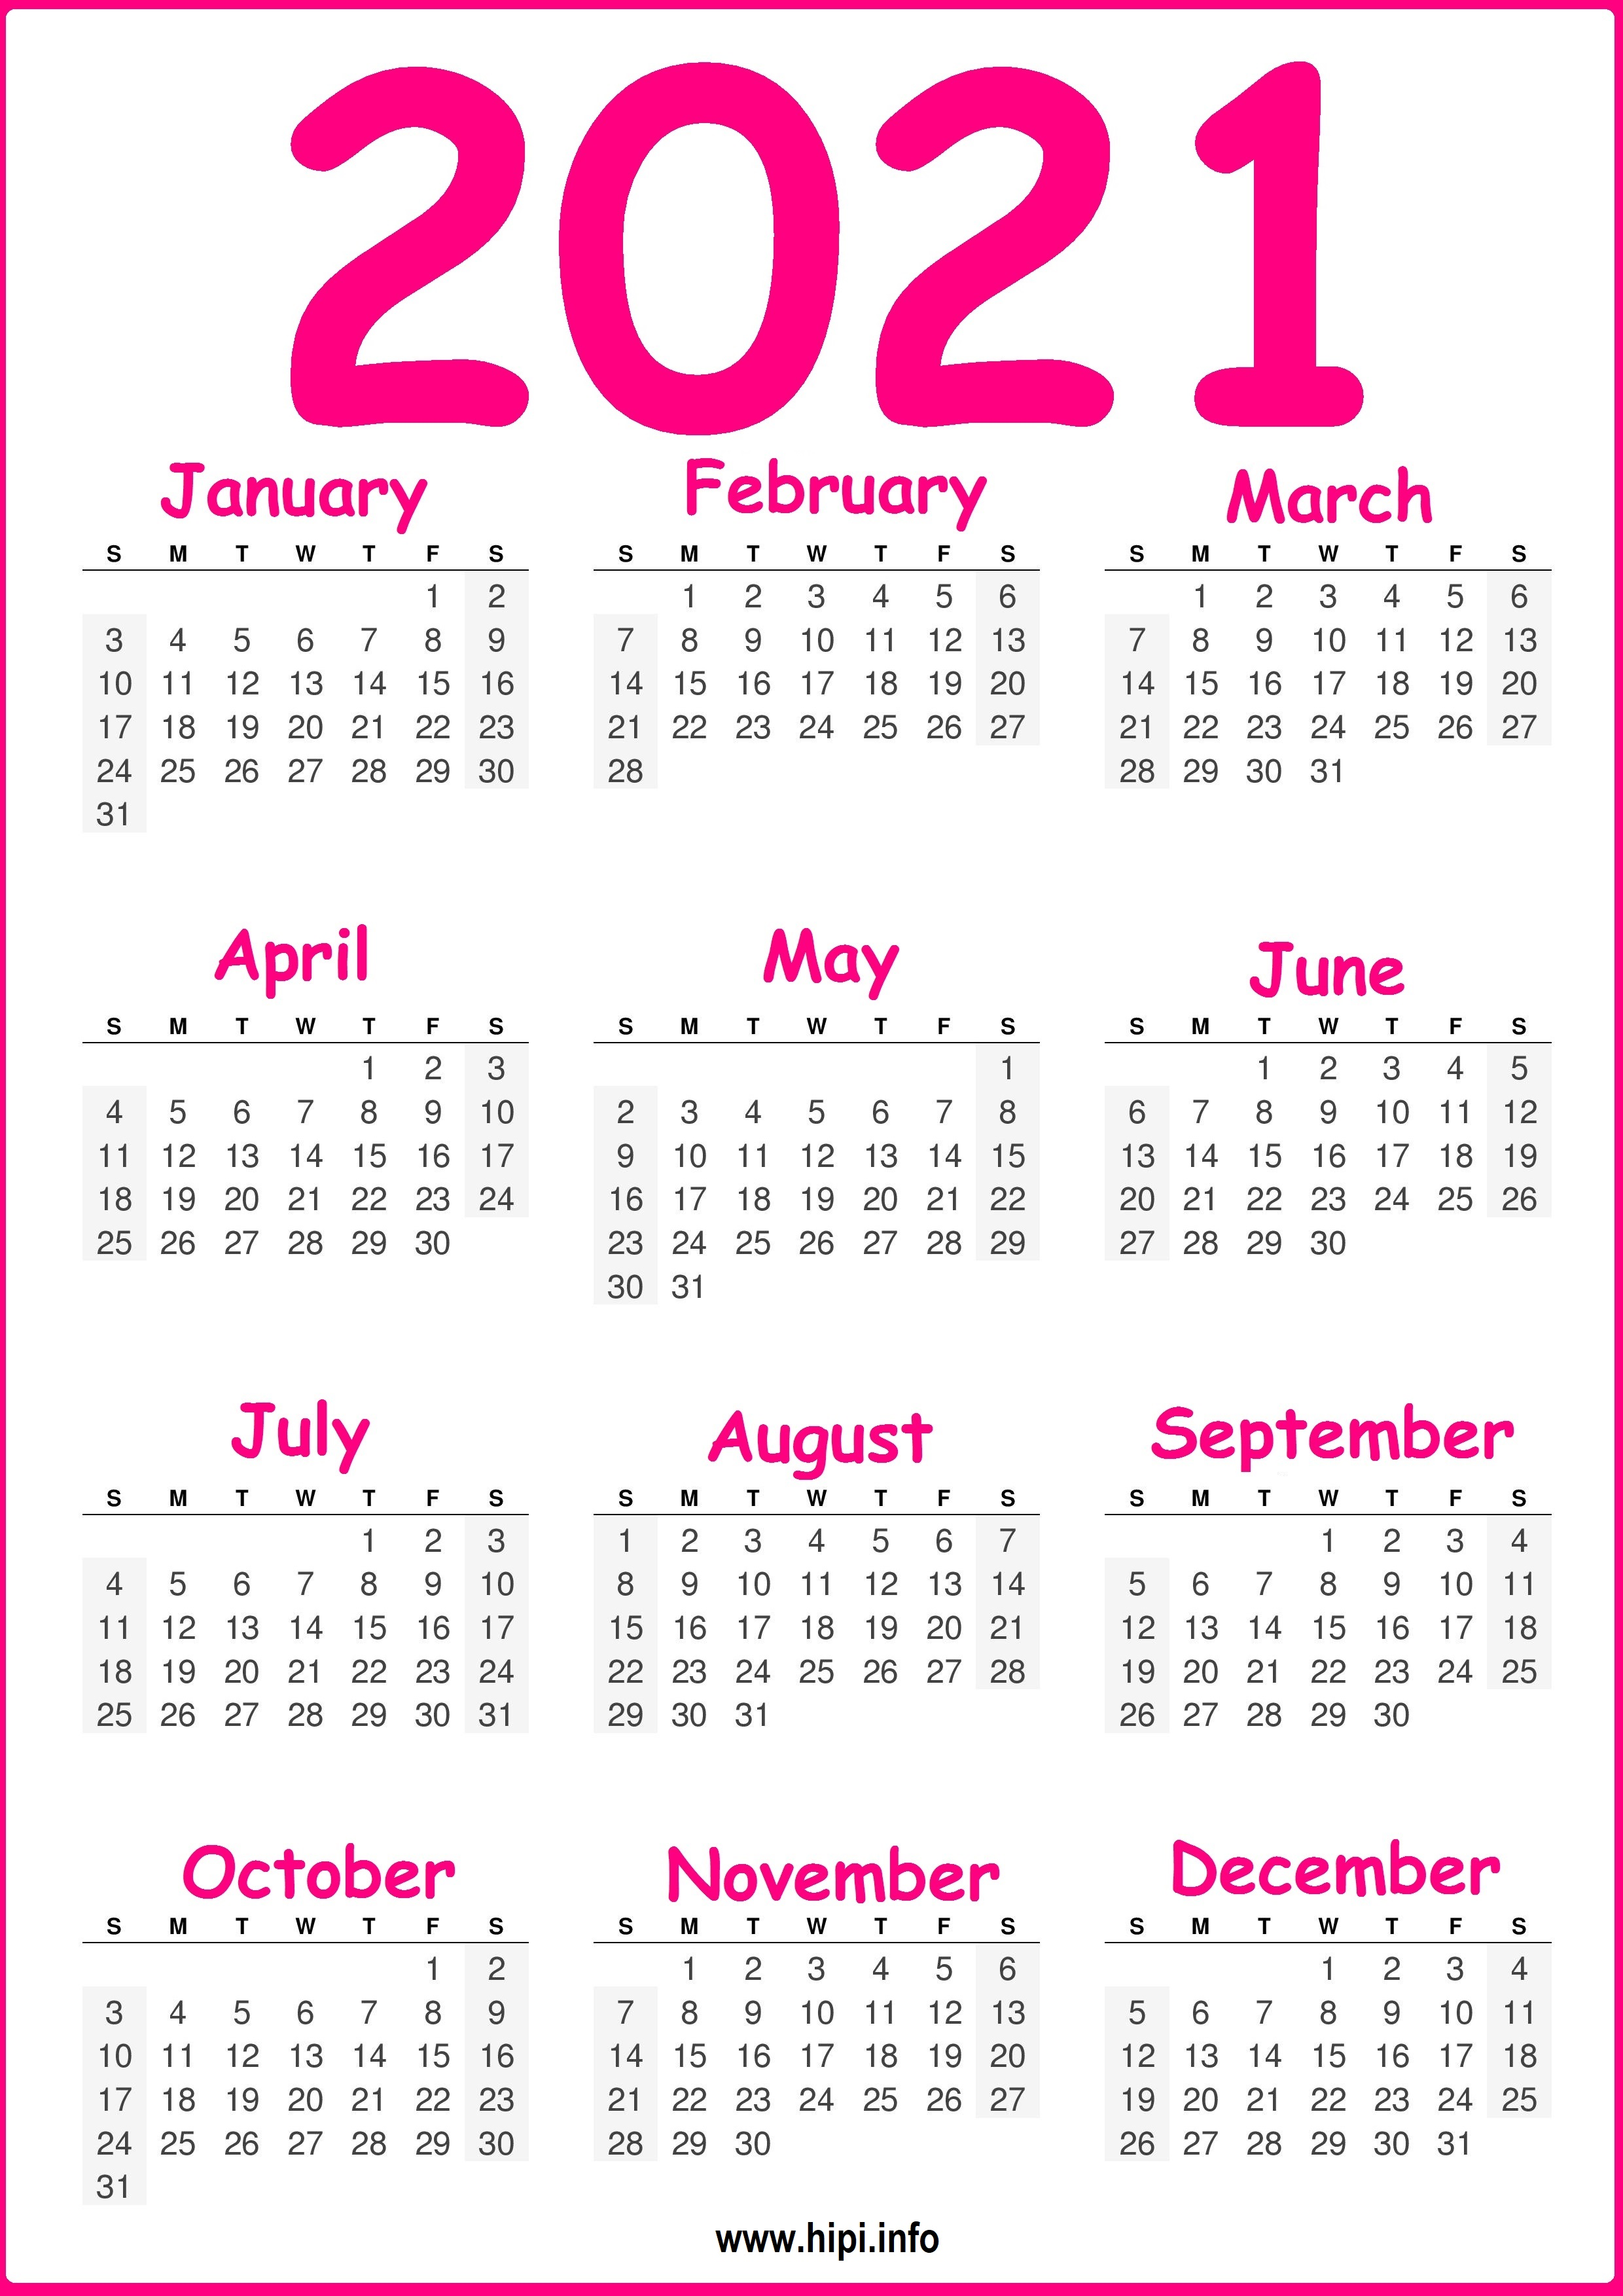 Free Printable 2021 Calendar, Pink and Green - Hipi.info